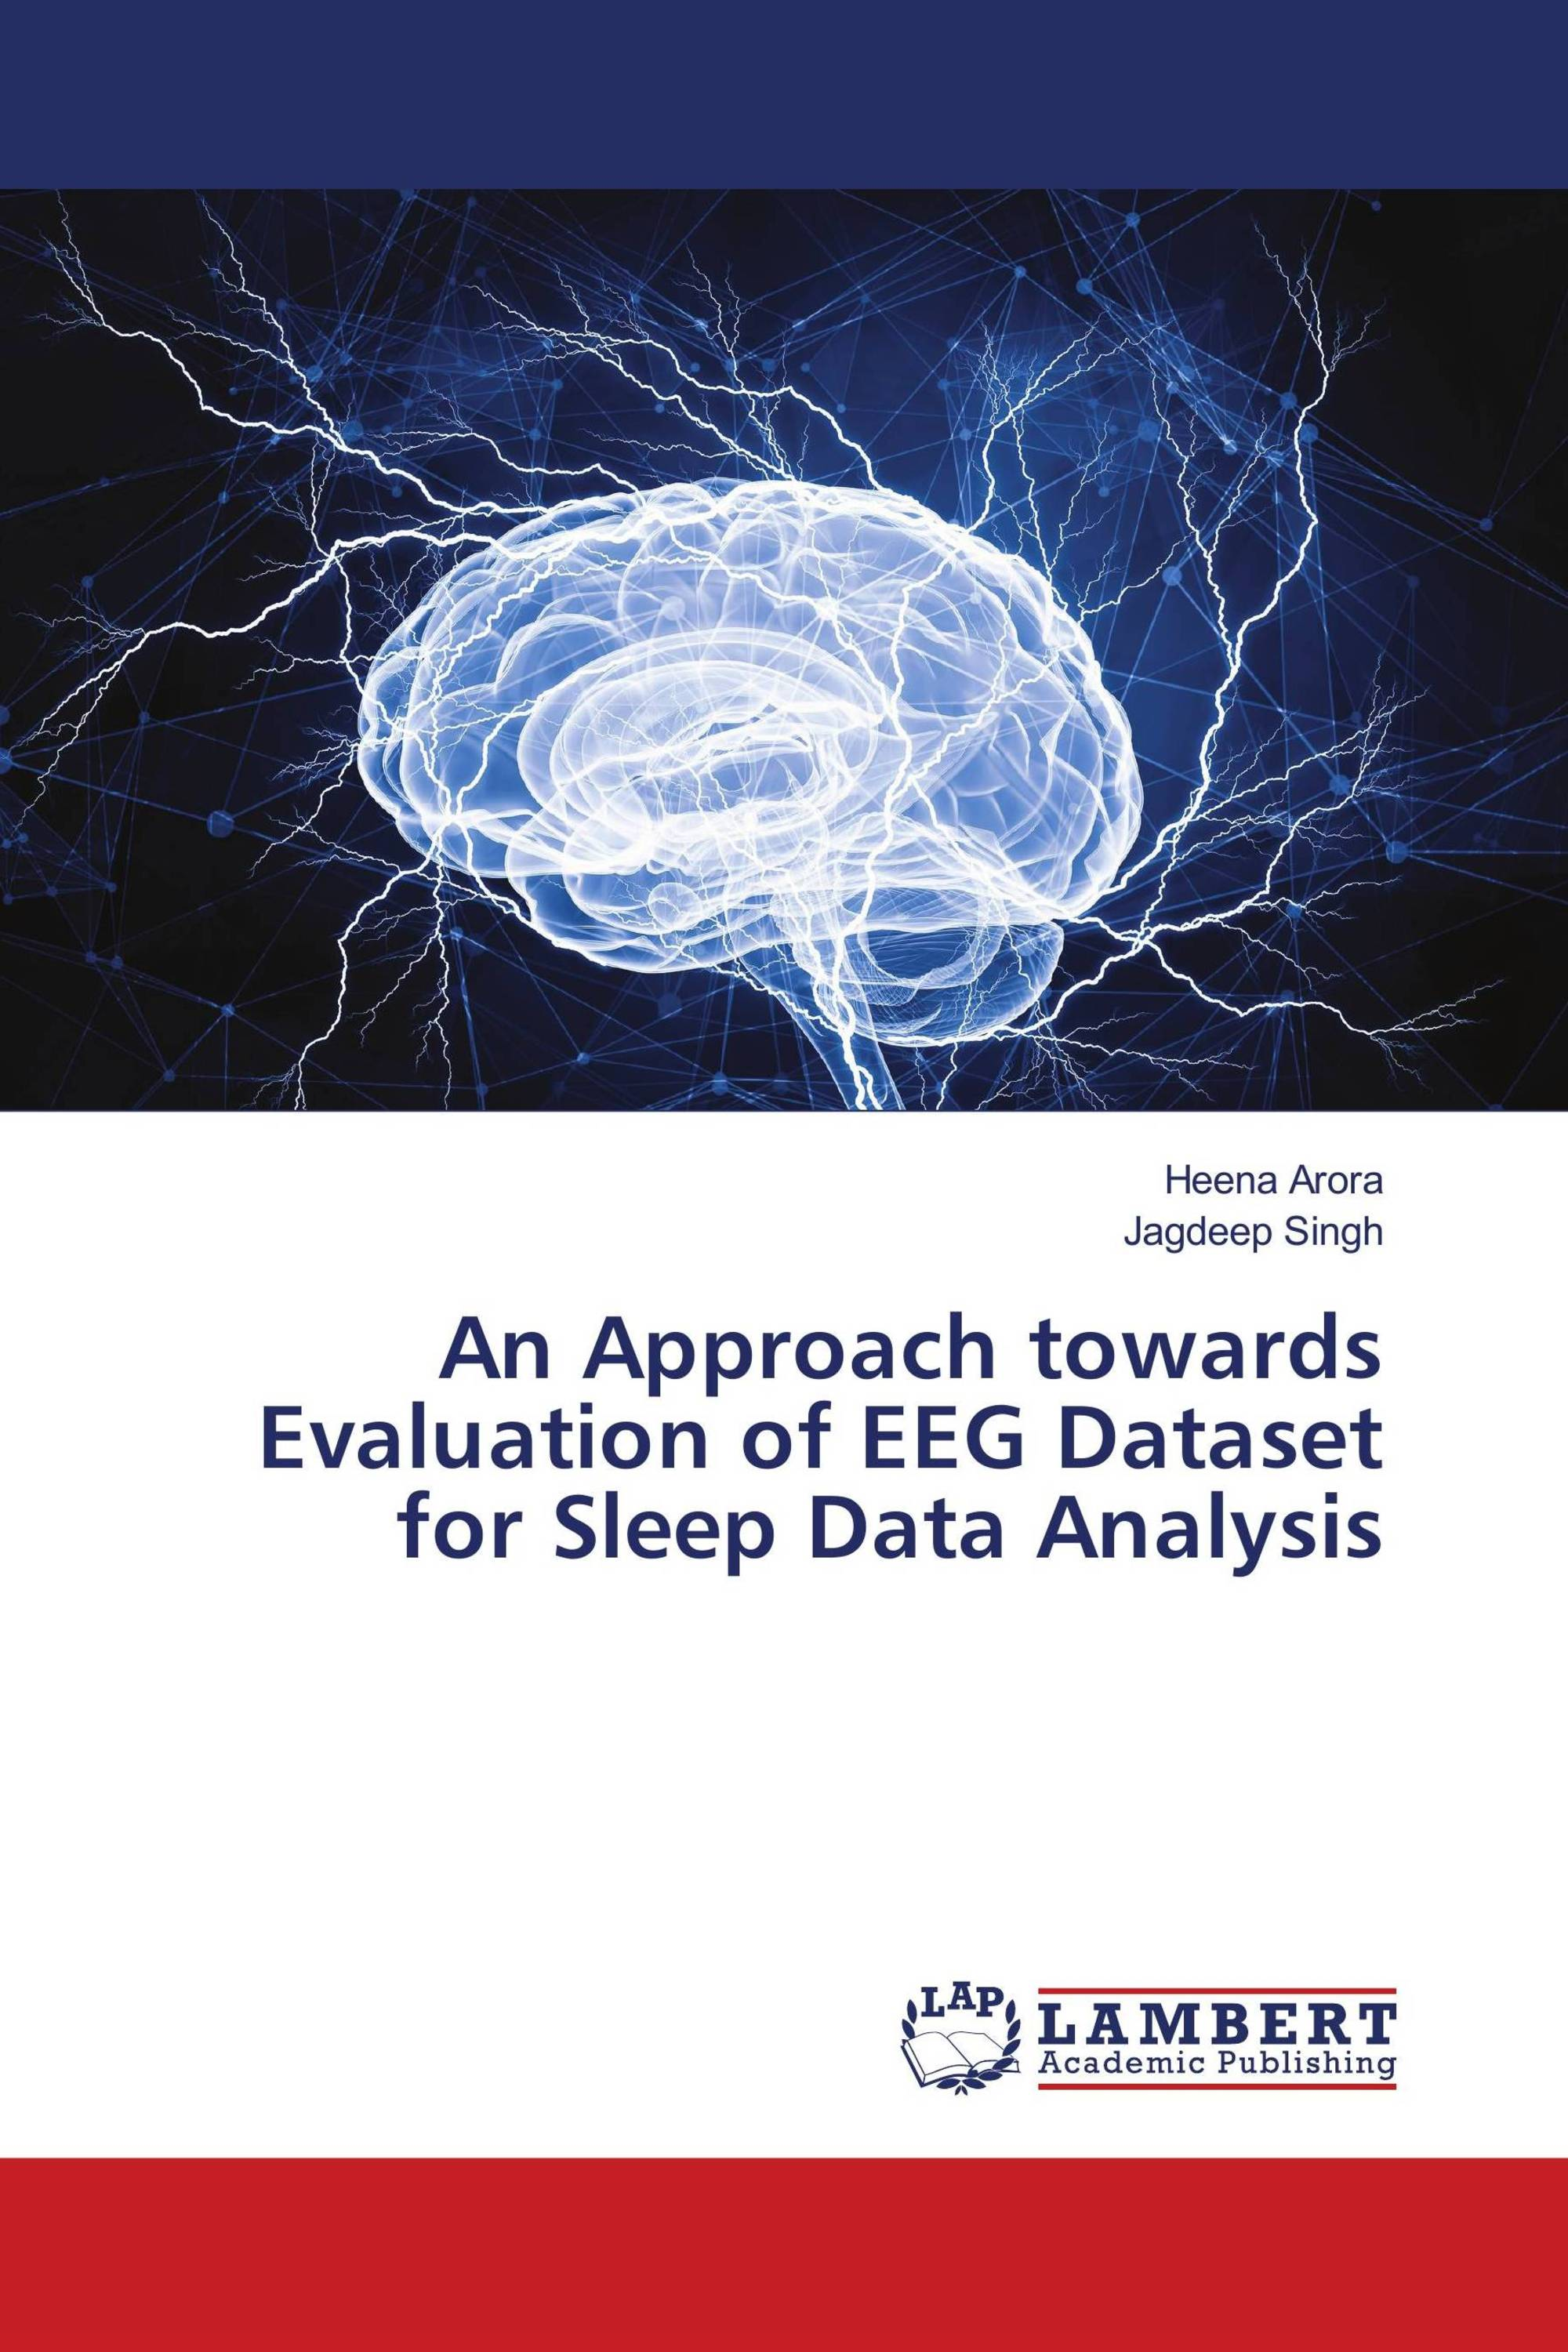 An Approach towards Evaluation of EEG Dataset for Sleep Data